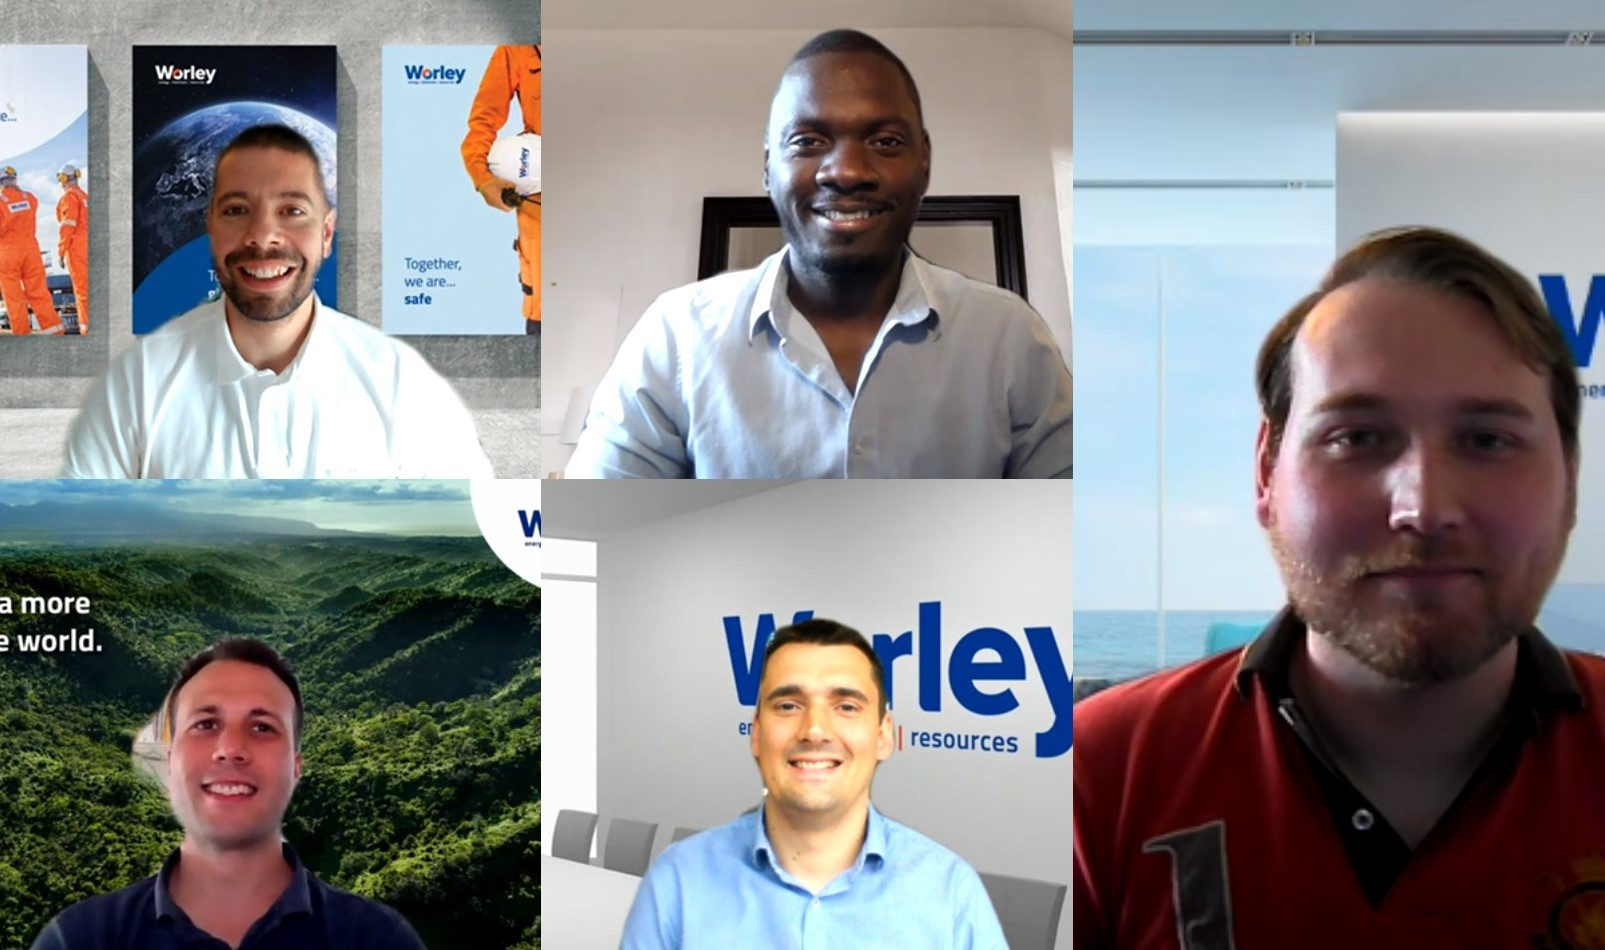 Screen grab of the The winning team from Worley